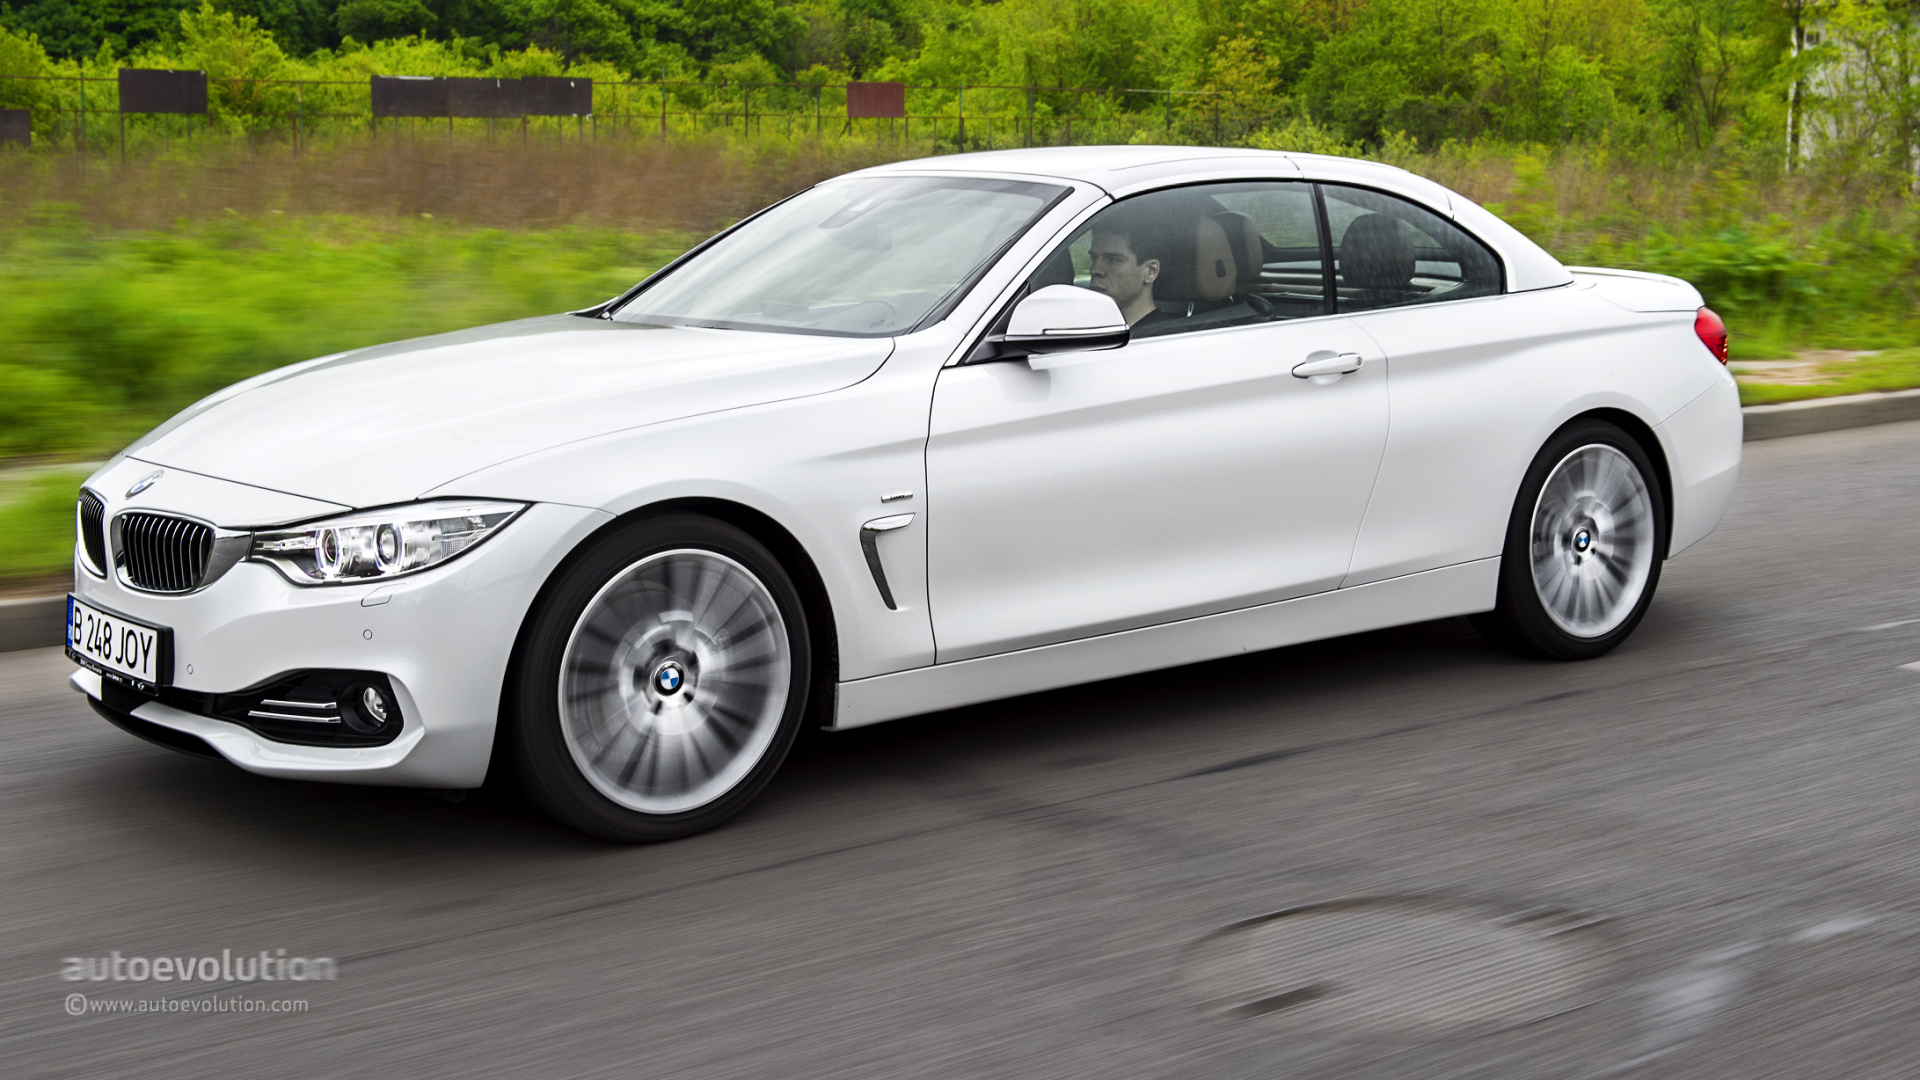 BMW 4 Series Convertible Review - autoevolution